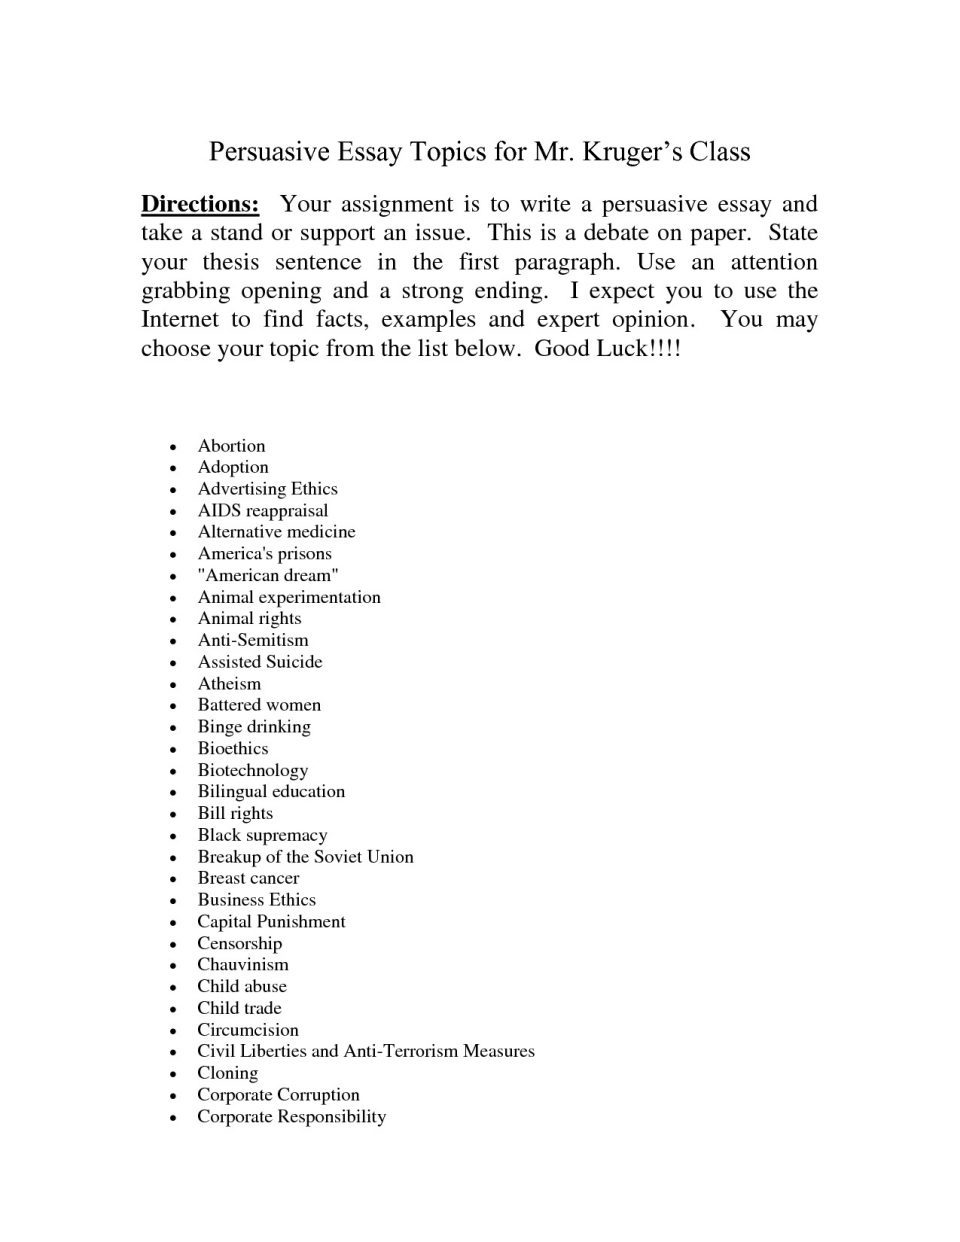 007 Topics To Write About In Research Paper Topic For Essay Barca Fontanacountryinn Within Good Persuasive Narrative Abo Easy Personal Shocking A Health On Full